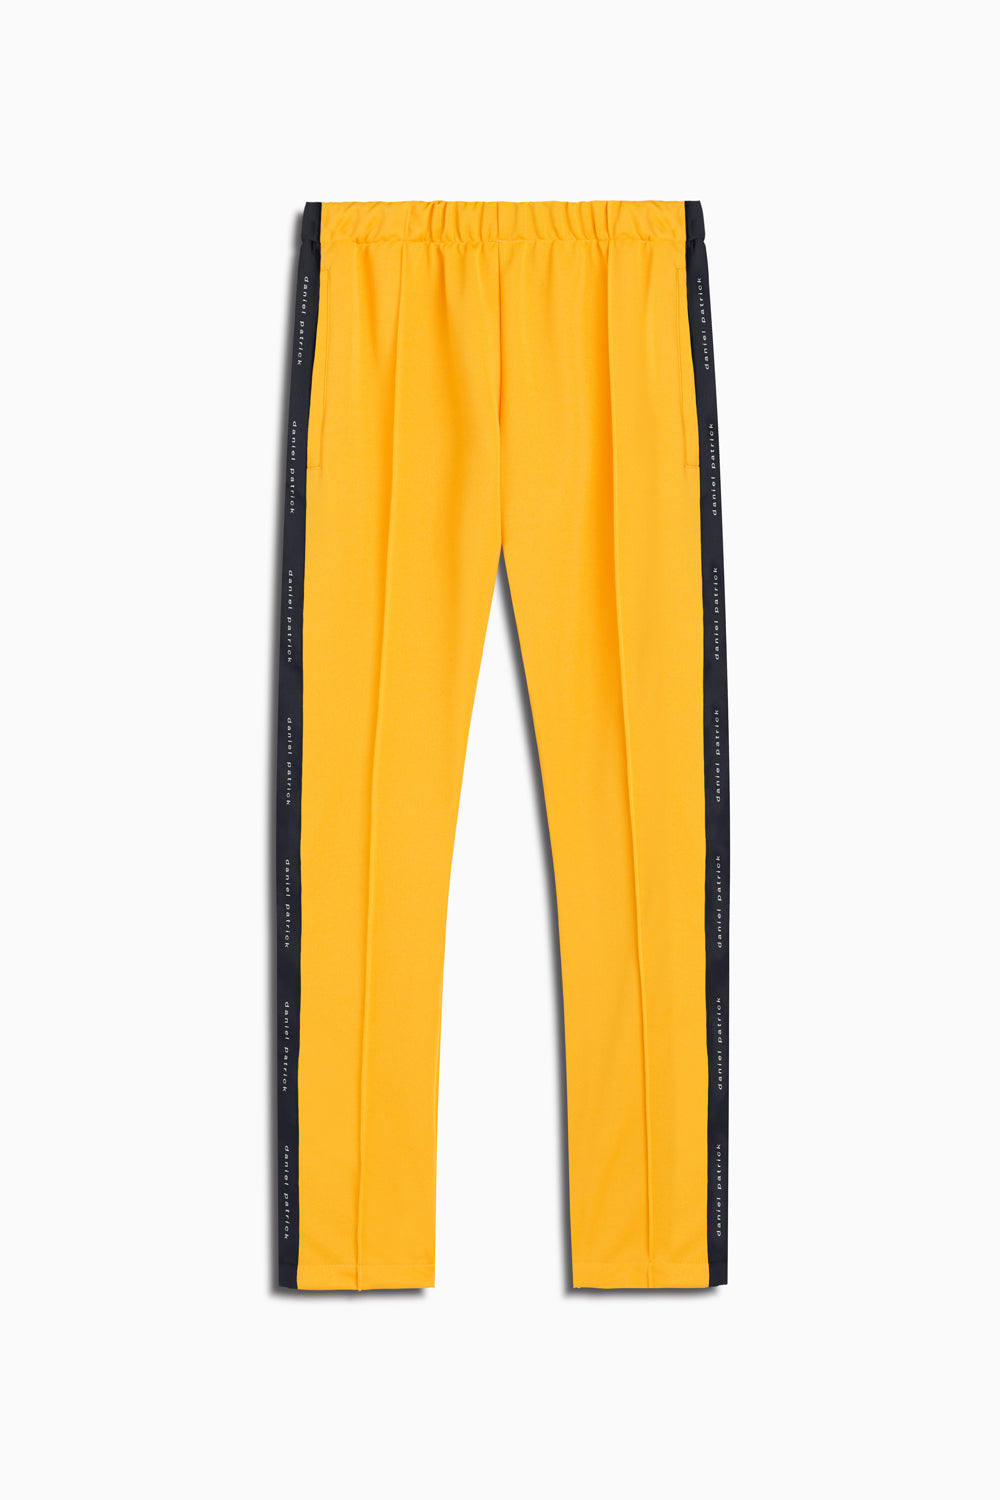 heroine track pant | yellow + black